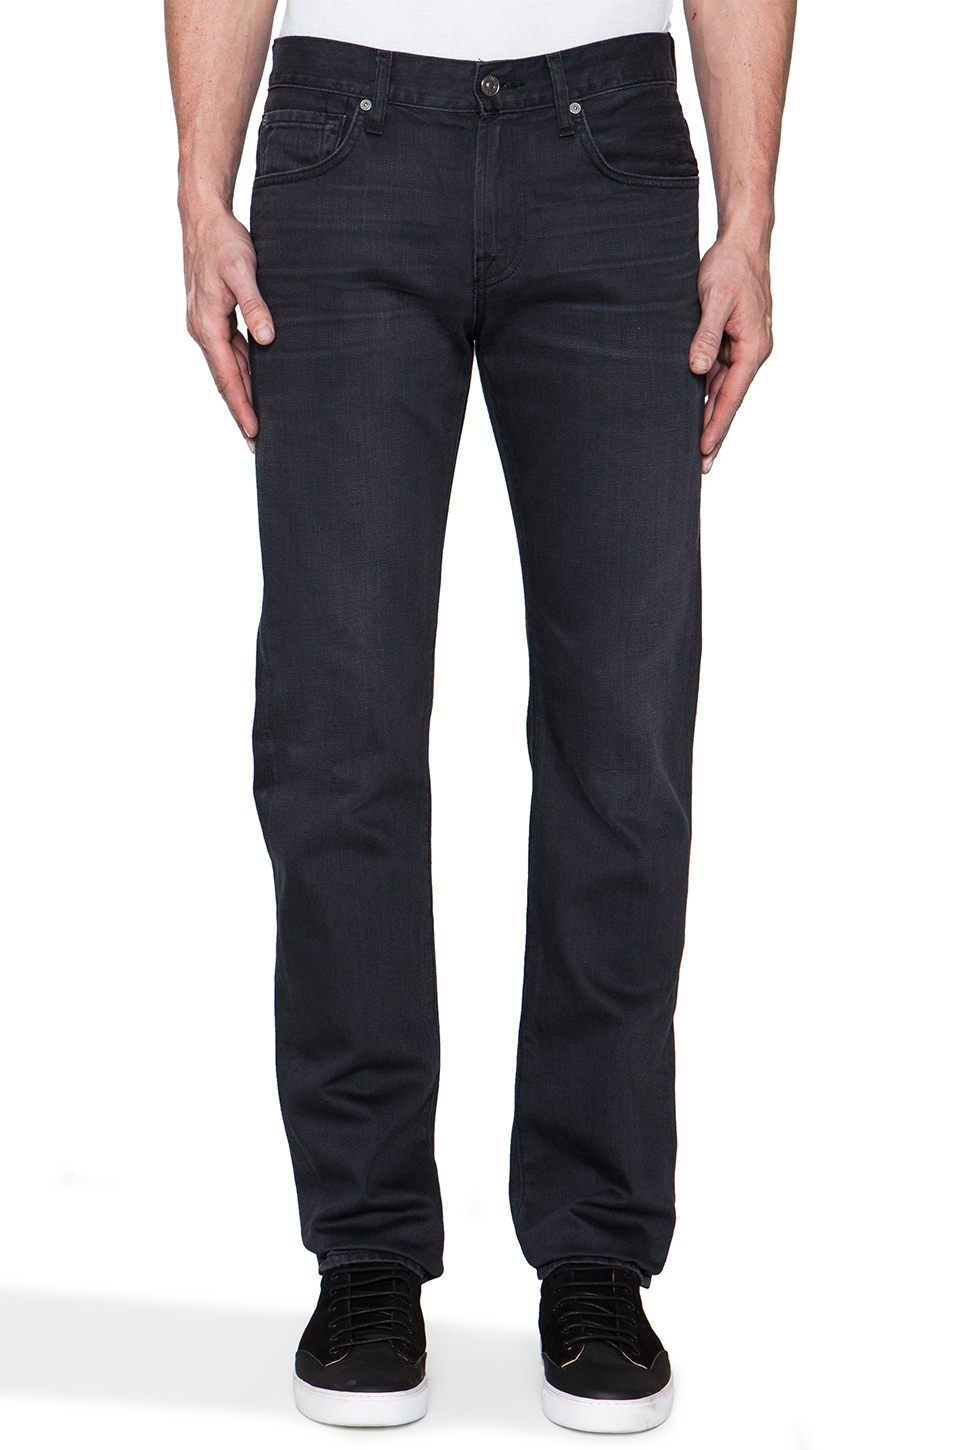 7 For All Mankind Straight in Arctic Greying